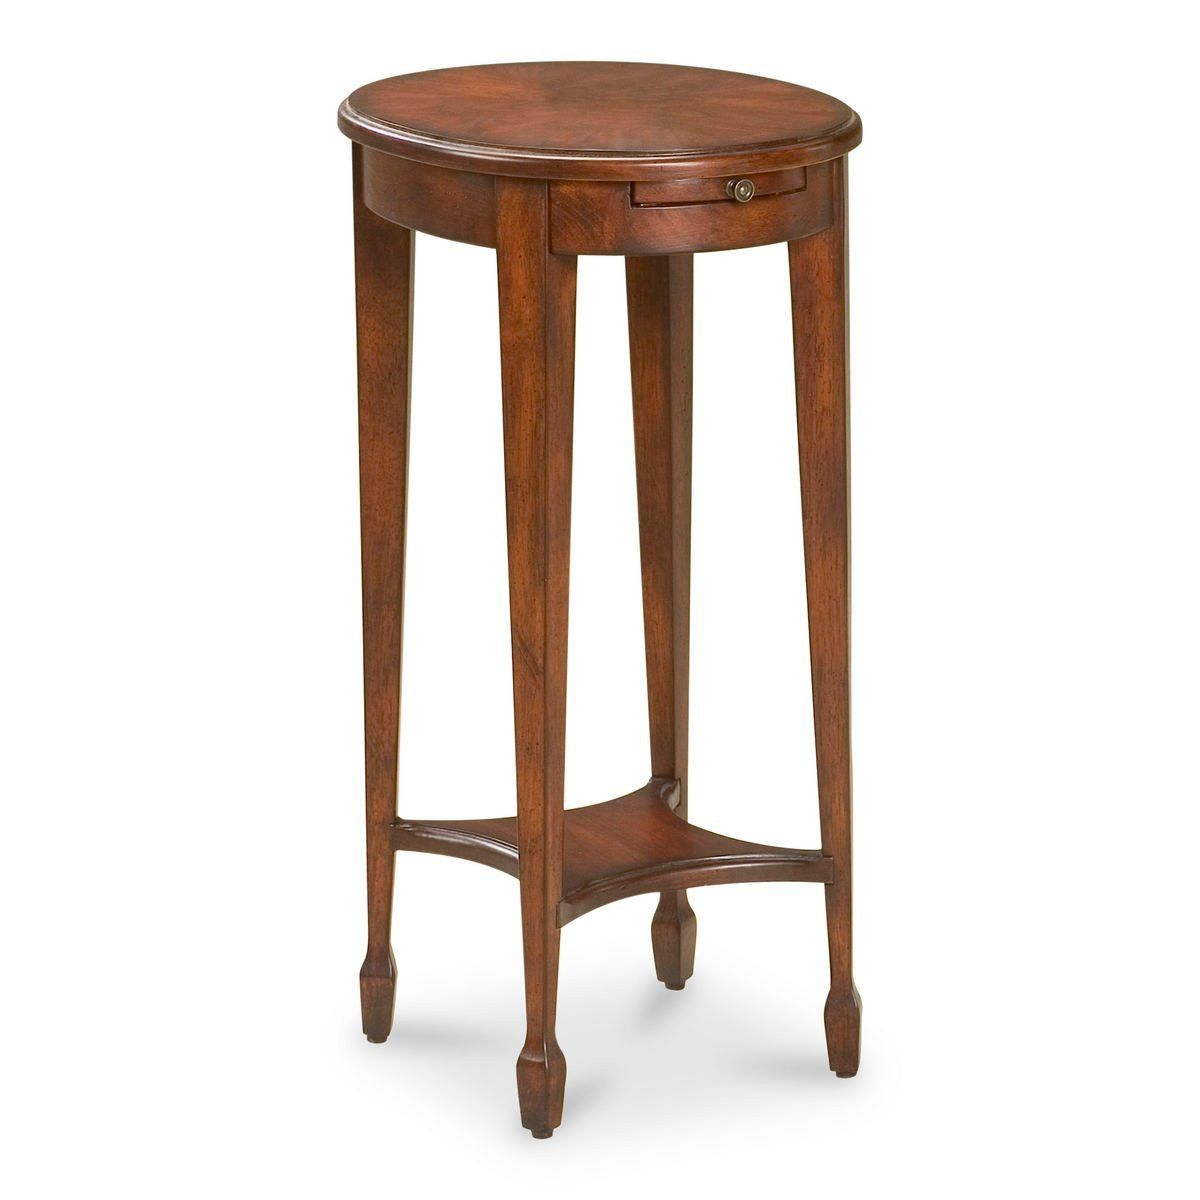 - Buy Butler Furniture BUT-1483024 Arielle Traditional Oval Accent